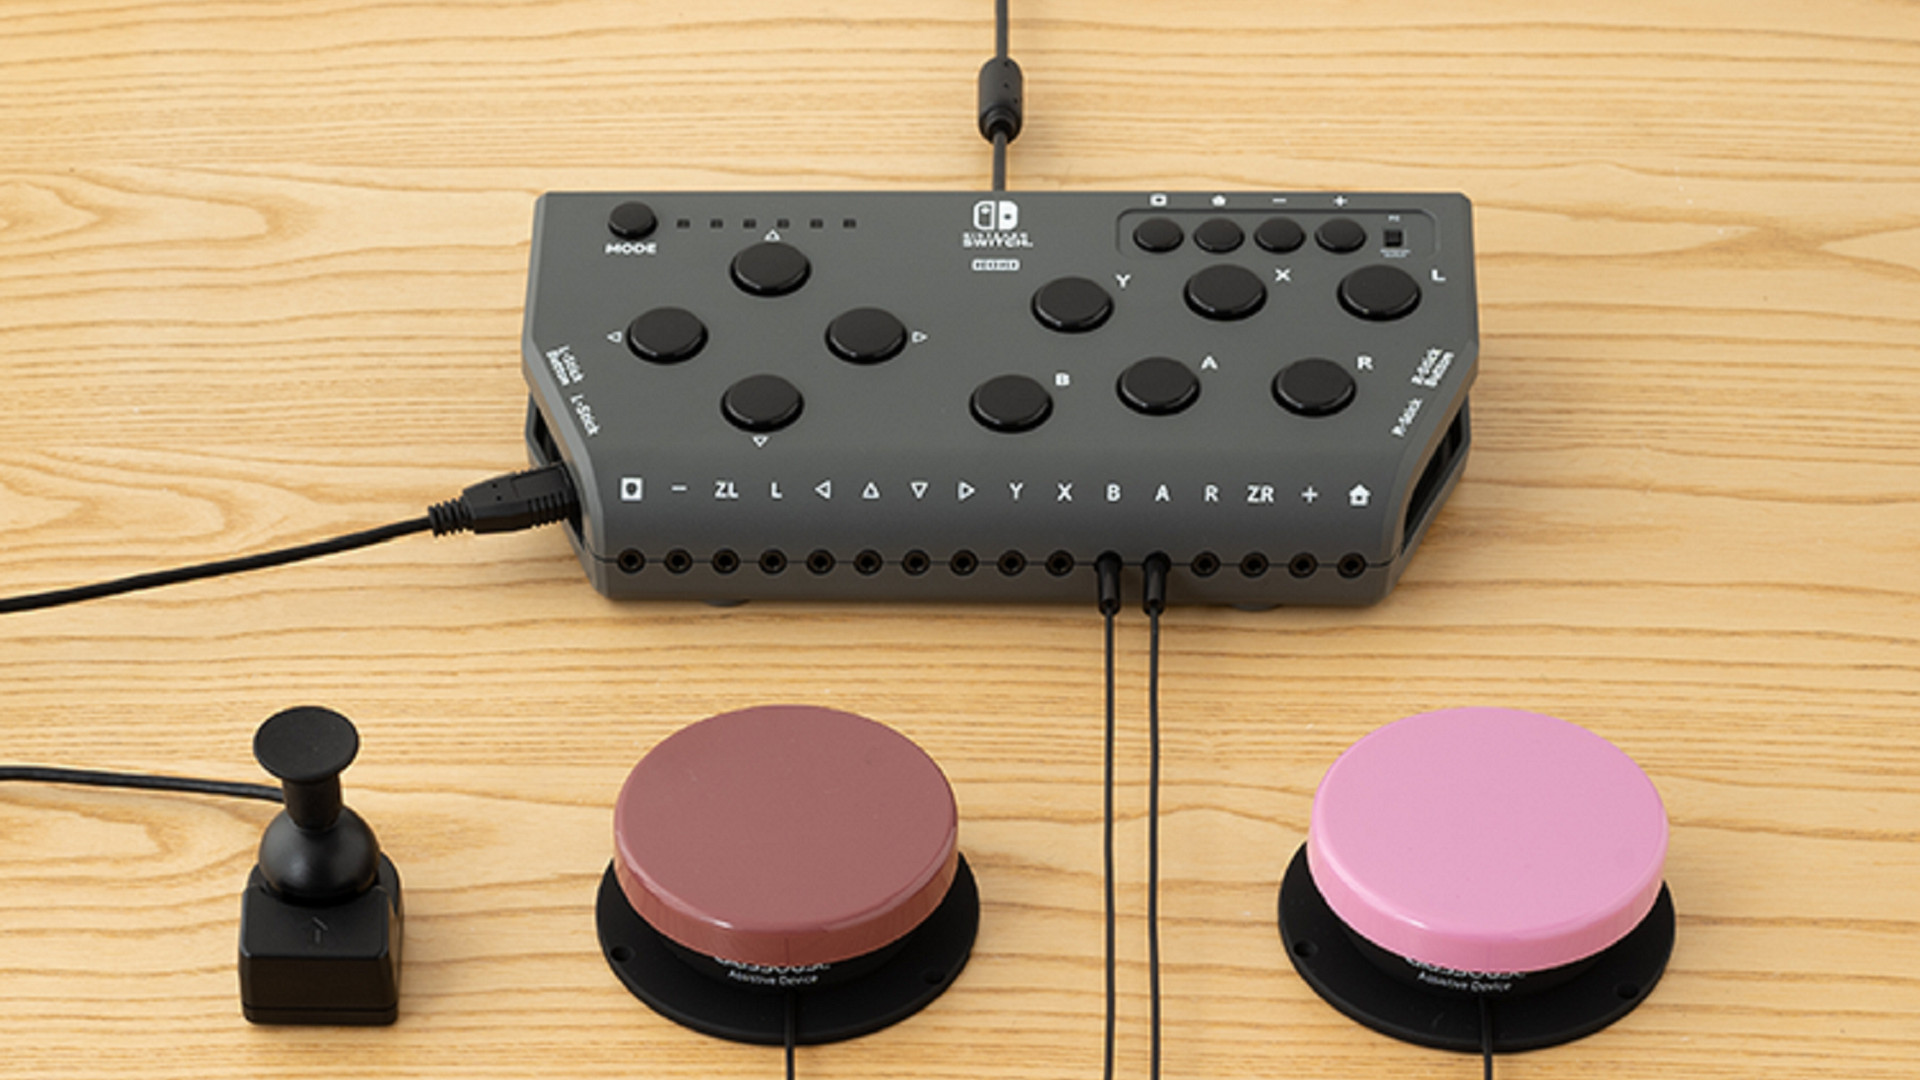 Hori Flex controller improves accessibility for disabled Nintendo Switch players